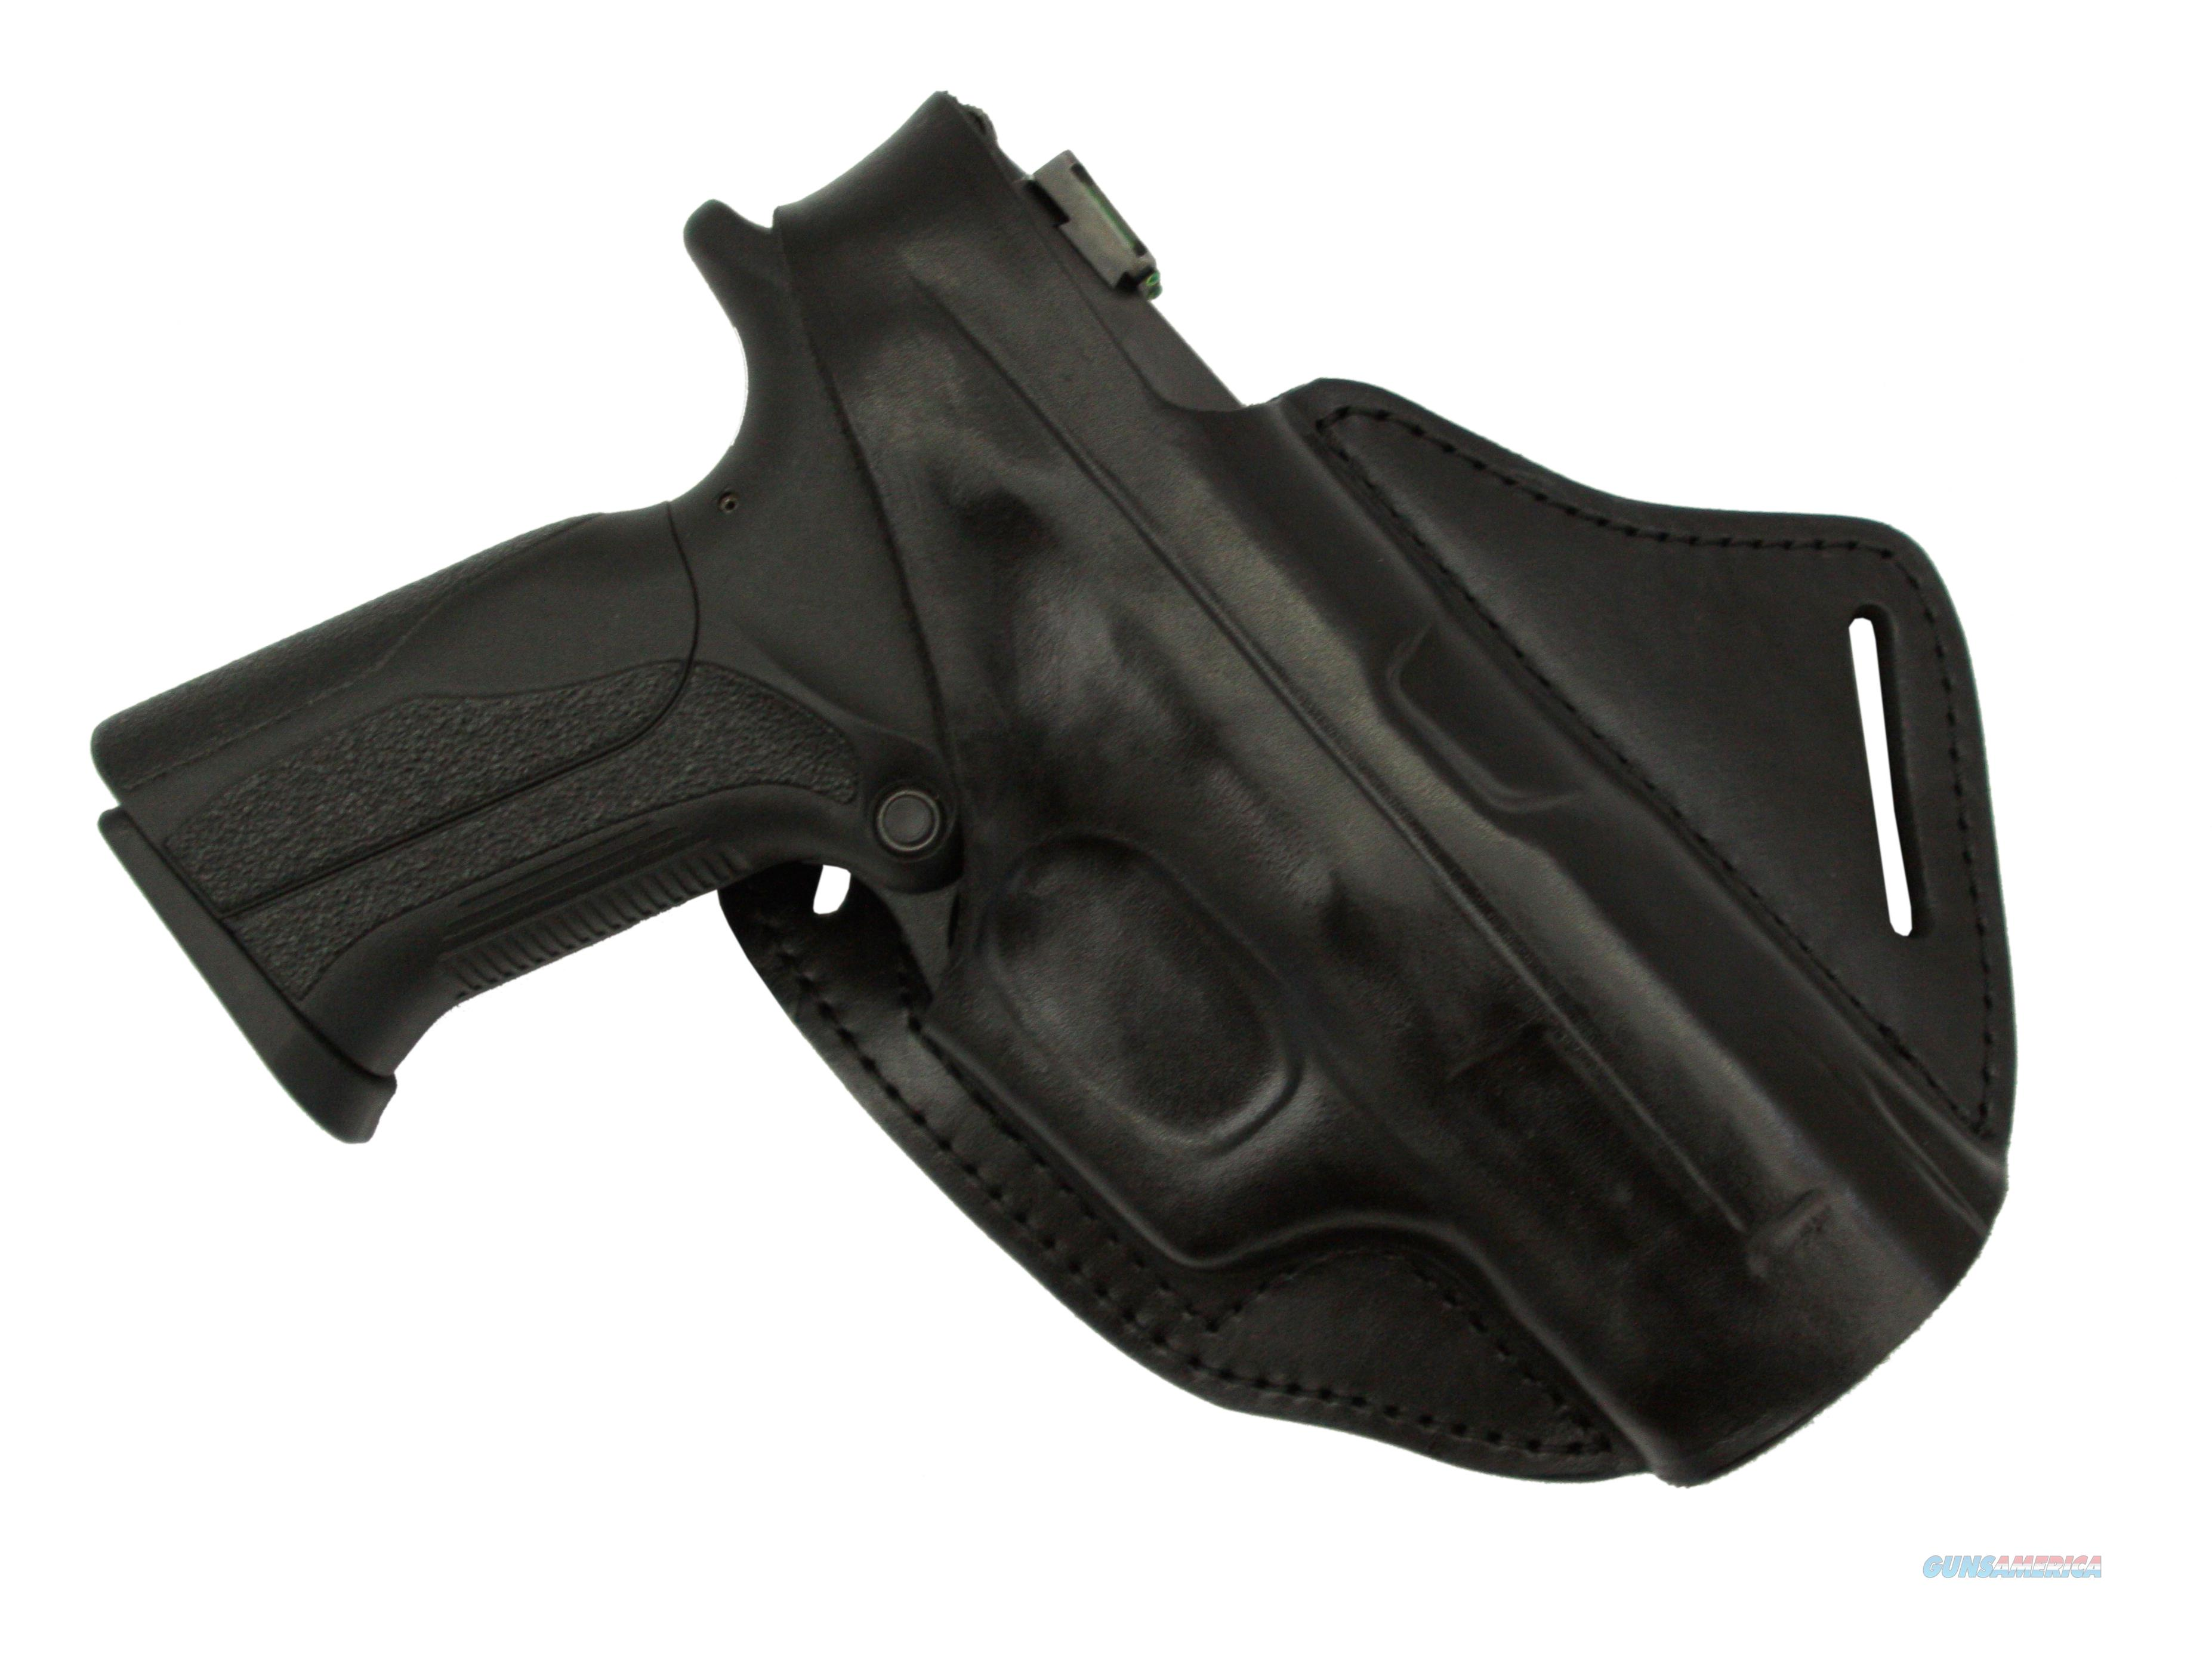 Cross Draw leather belt holster Glock 20/21  Non-Guns > Holsters and Gunleather > Concealed Carry